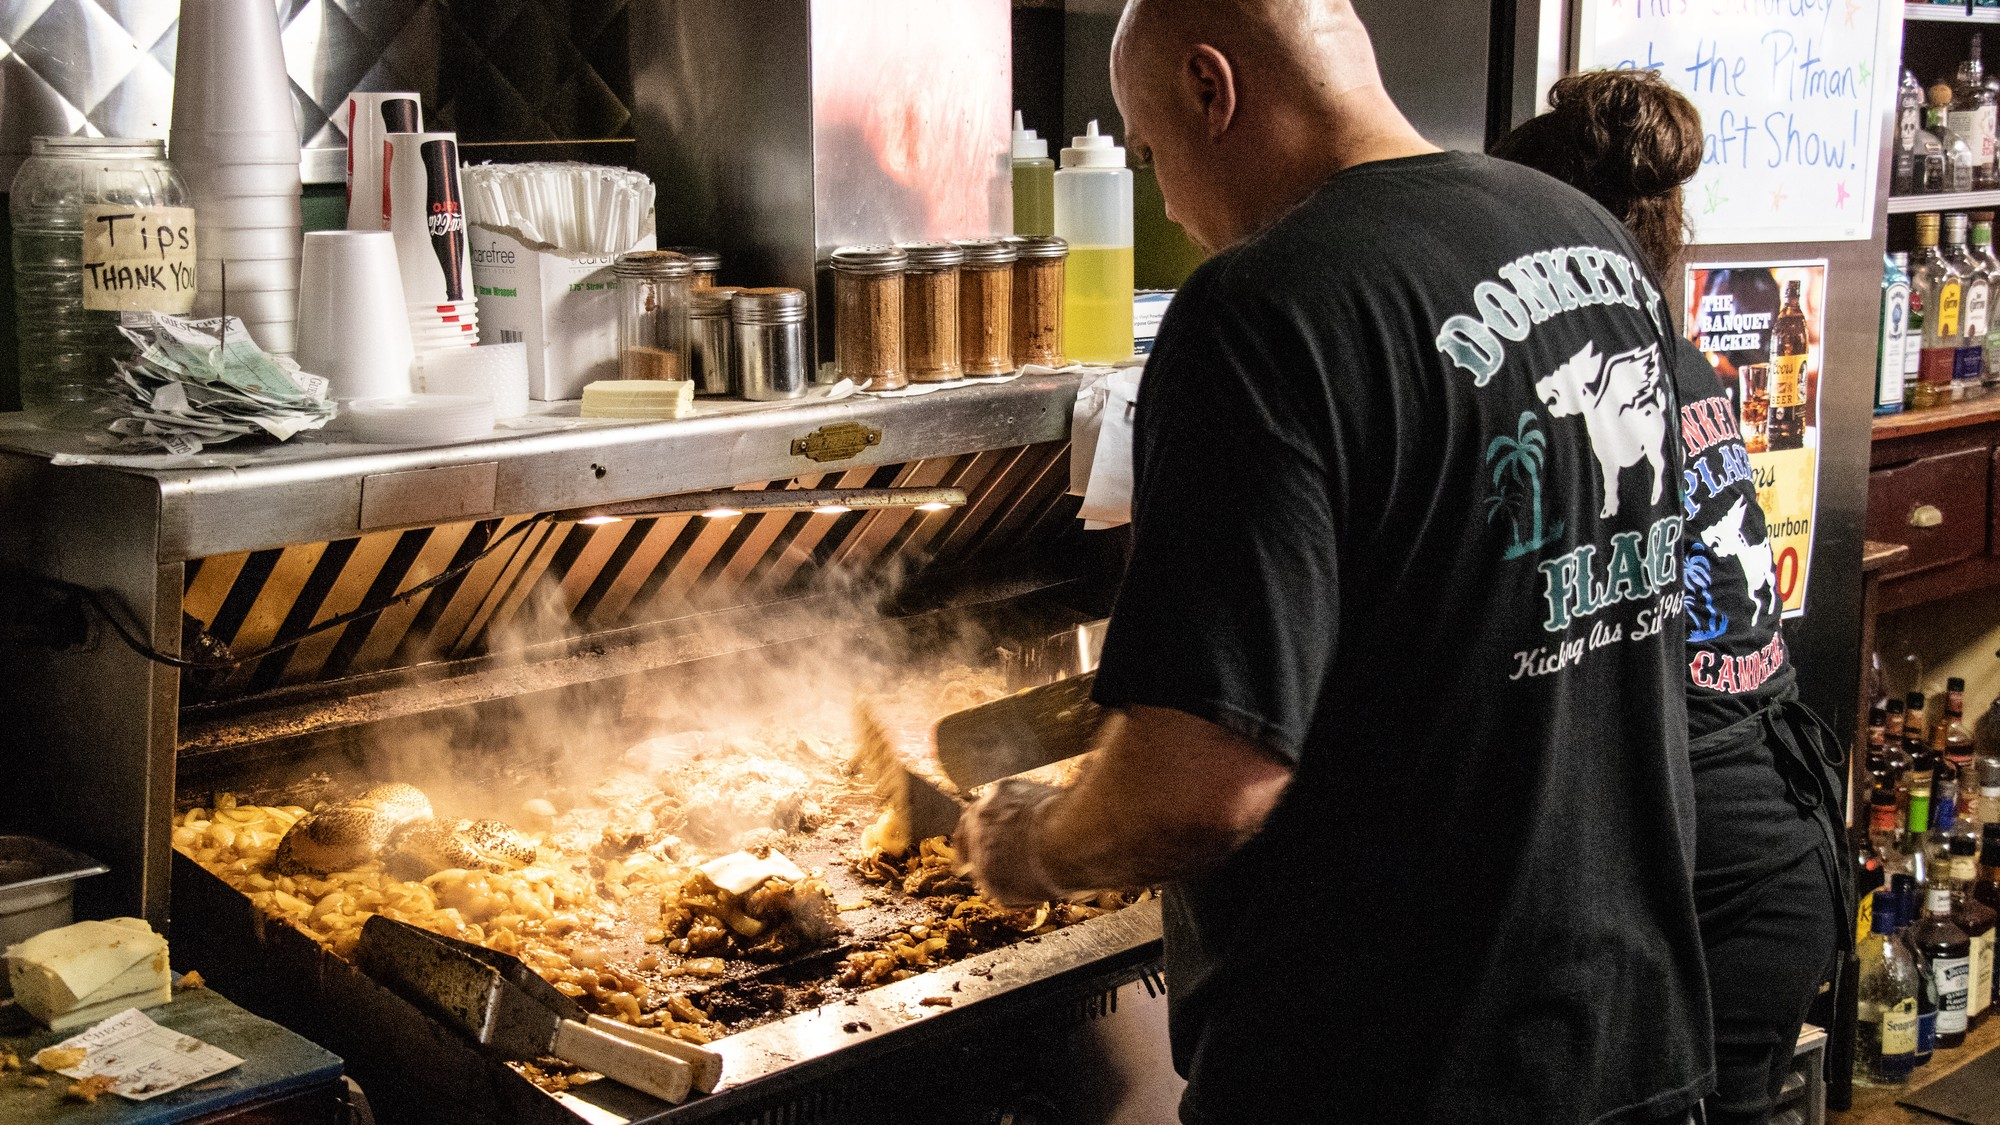 Best Cheesesteak In Philly 2020 This New Jersey Bar Has Rivaled Philly for the Title of Best